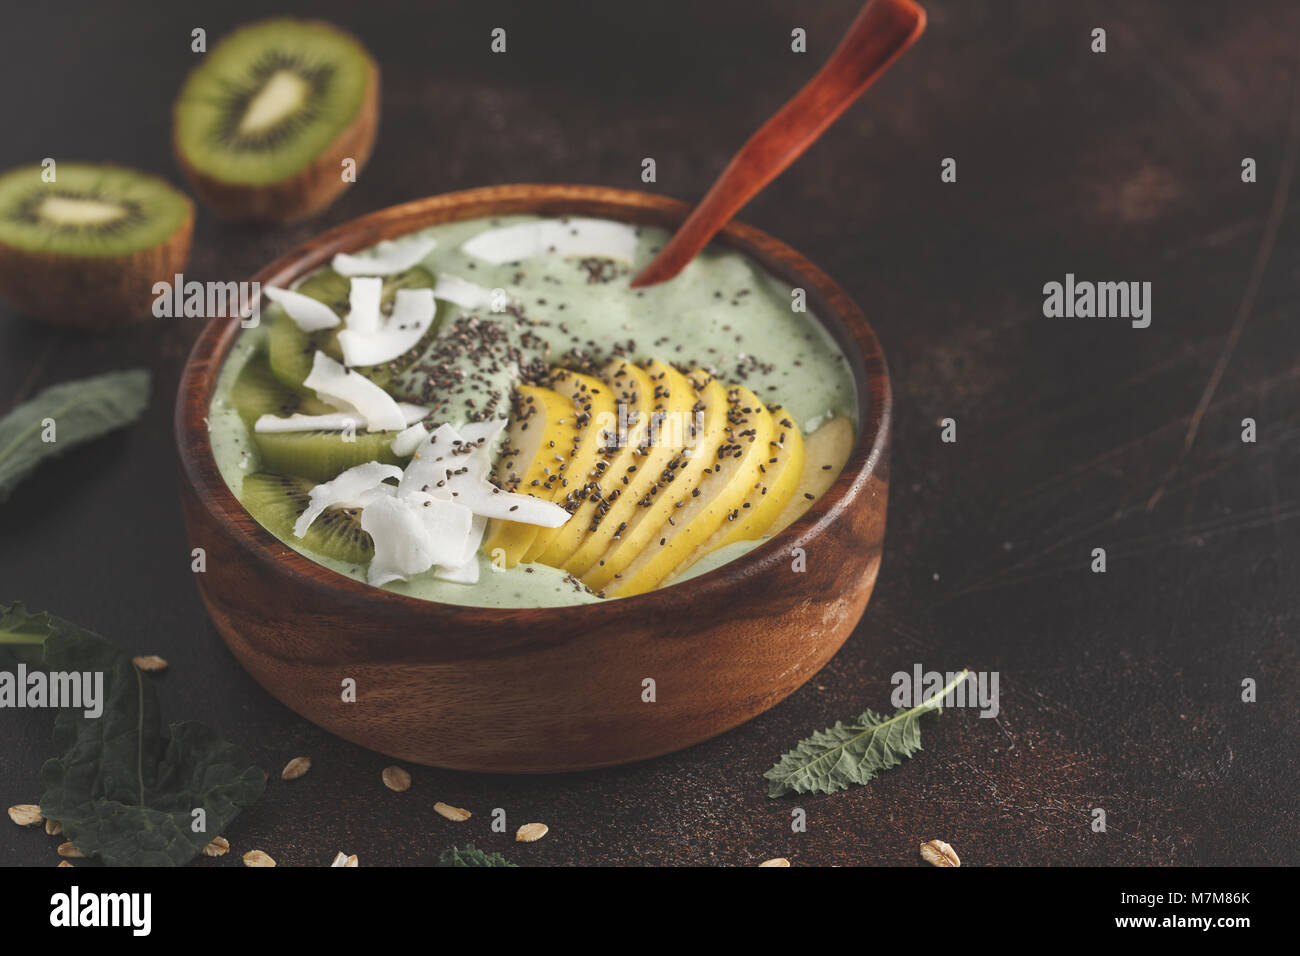 Green kale vegan smoothie bowl with coconut, chia, apple and kiwi. Healthy vegan food concept. Dark rusty background, - Stock Image